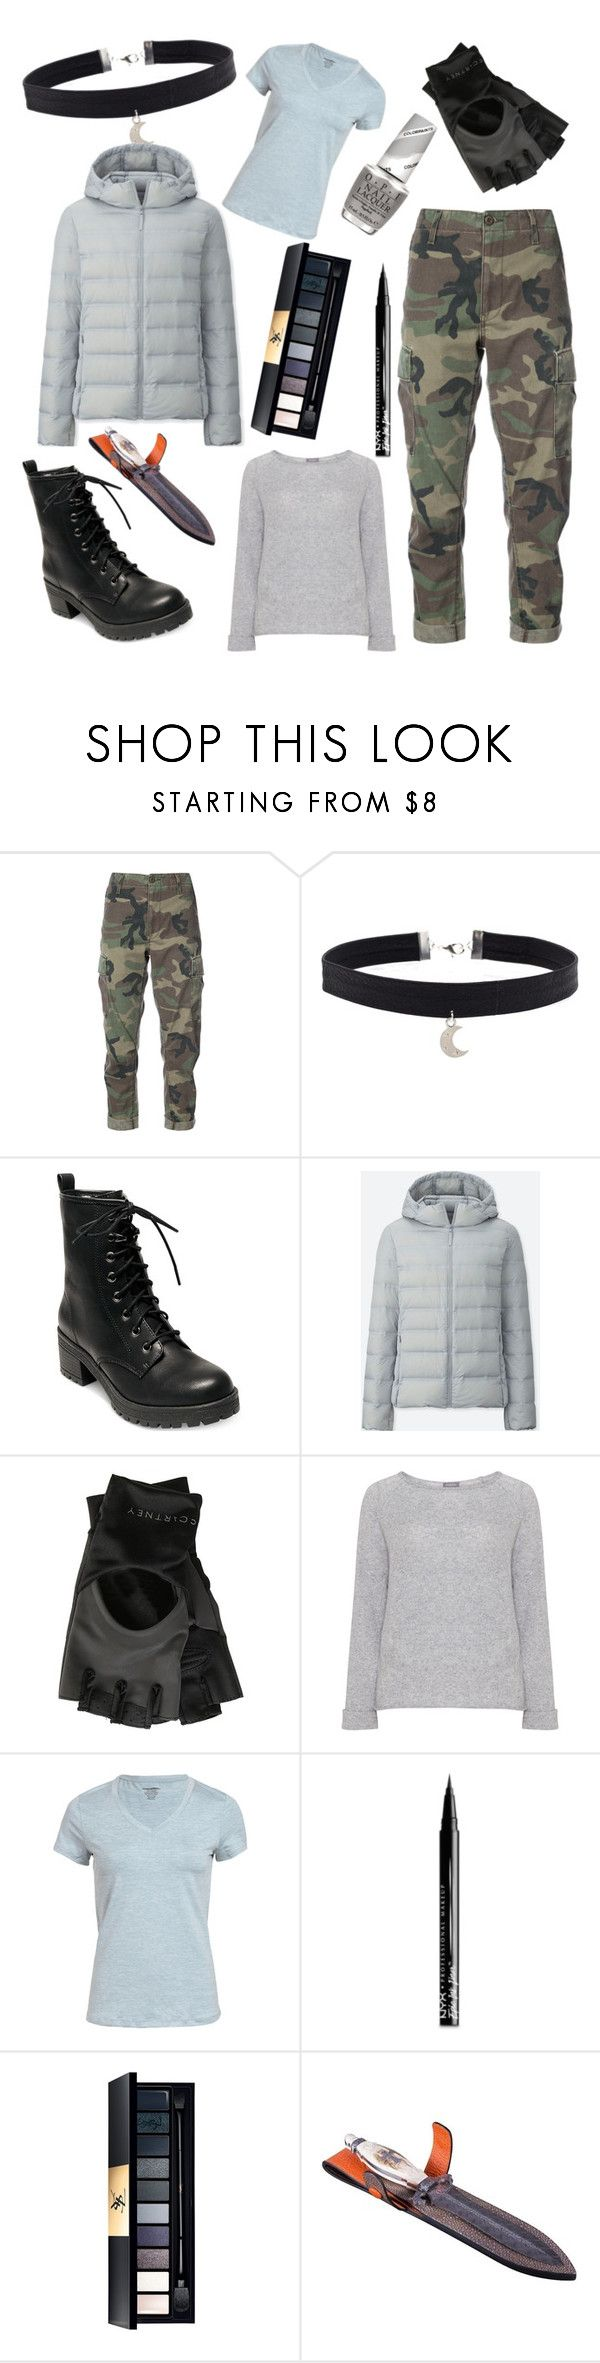 """""""Hunter of Artemis"""" by nerdphotos ❤ liked on Polyvore featuring RE/DONE, Madden Girl, Uniqlo, adidas, Samoon, NYX, John Lewis and OPI"""